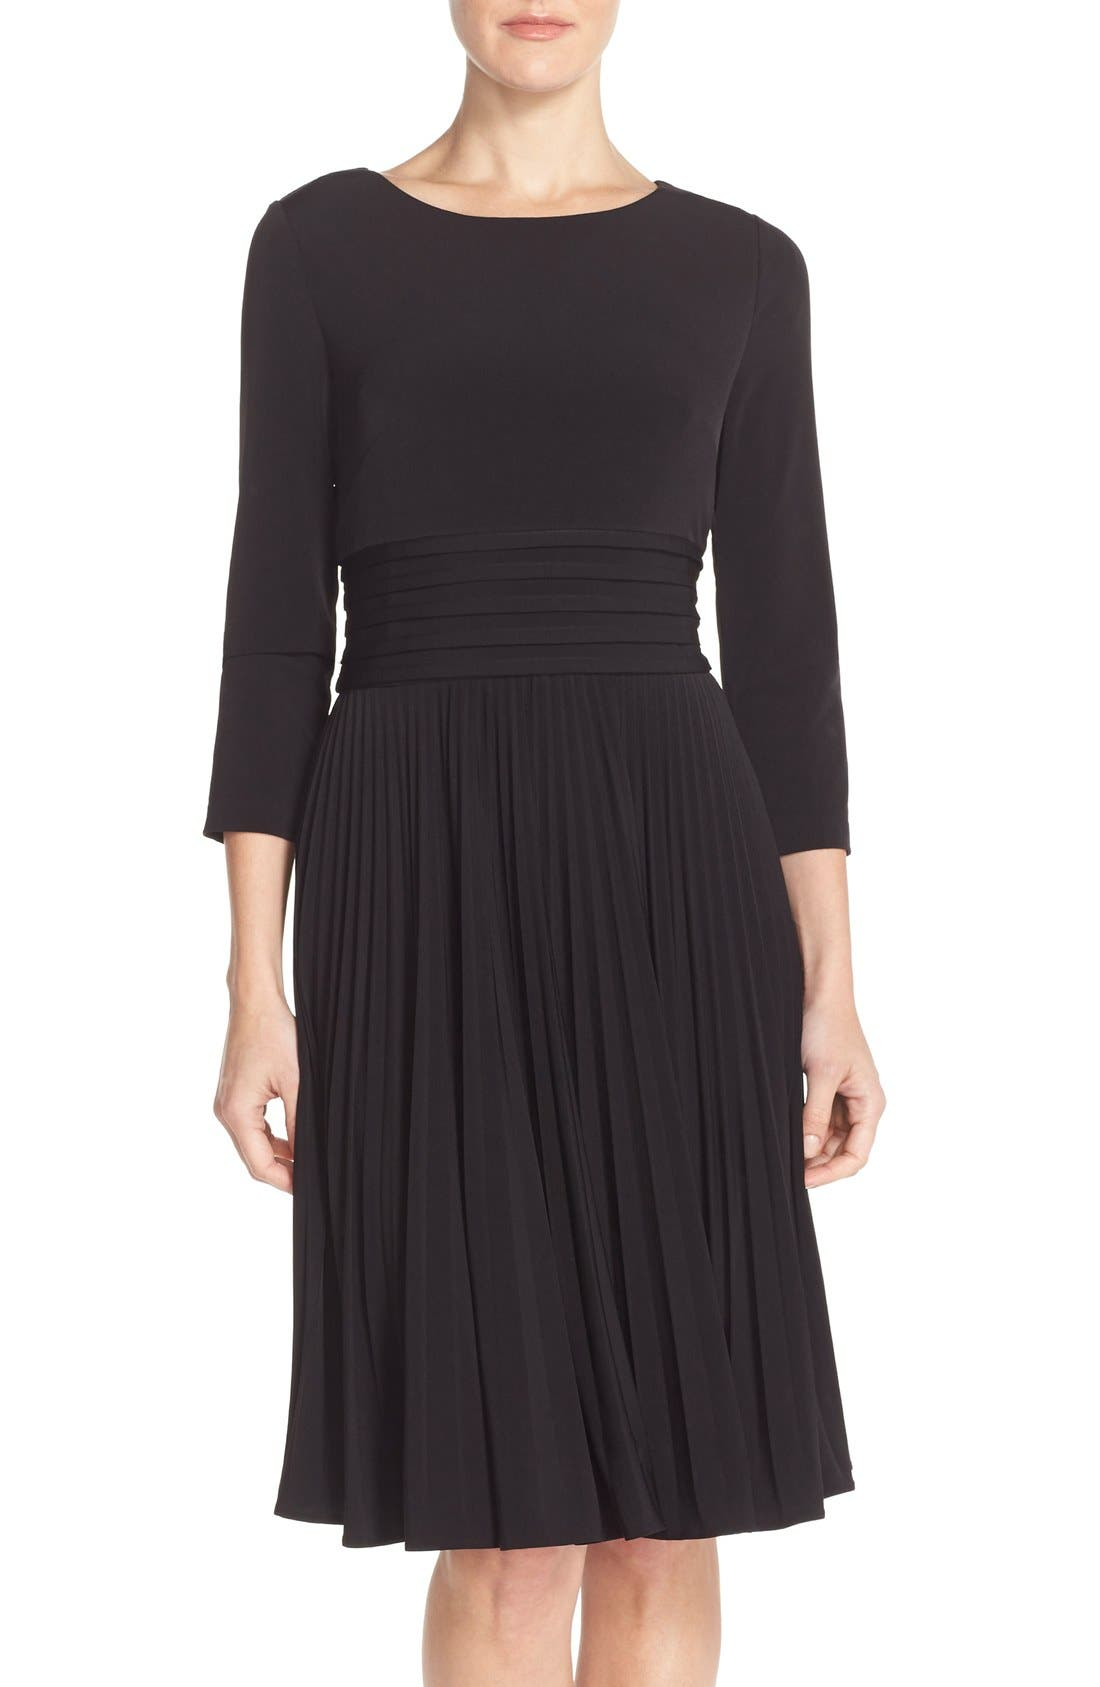 ELIZA J Pleated Jersey Fit & Flare Dress, Main, color, 001